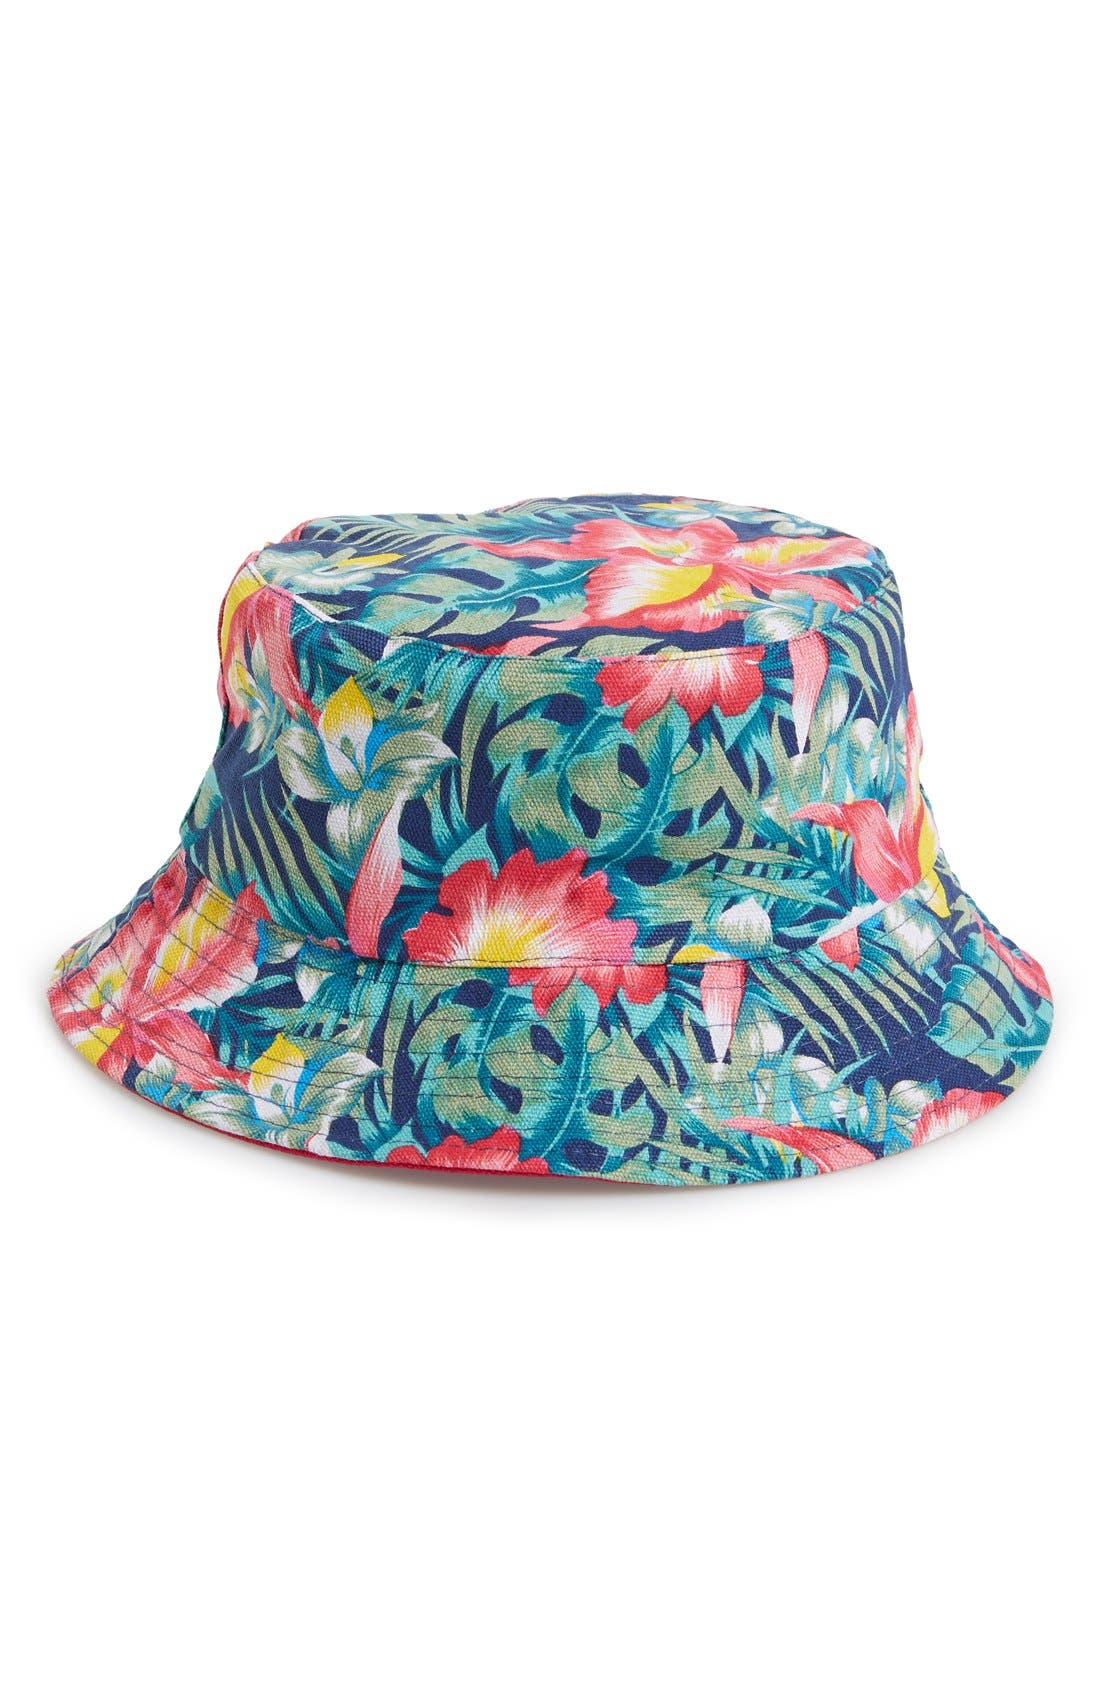 Main Image - Amici Accessories Reversible Bucket Hat